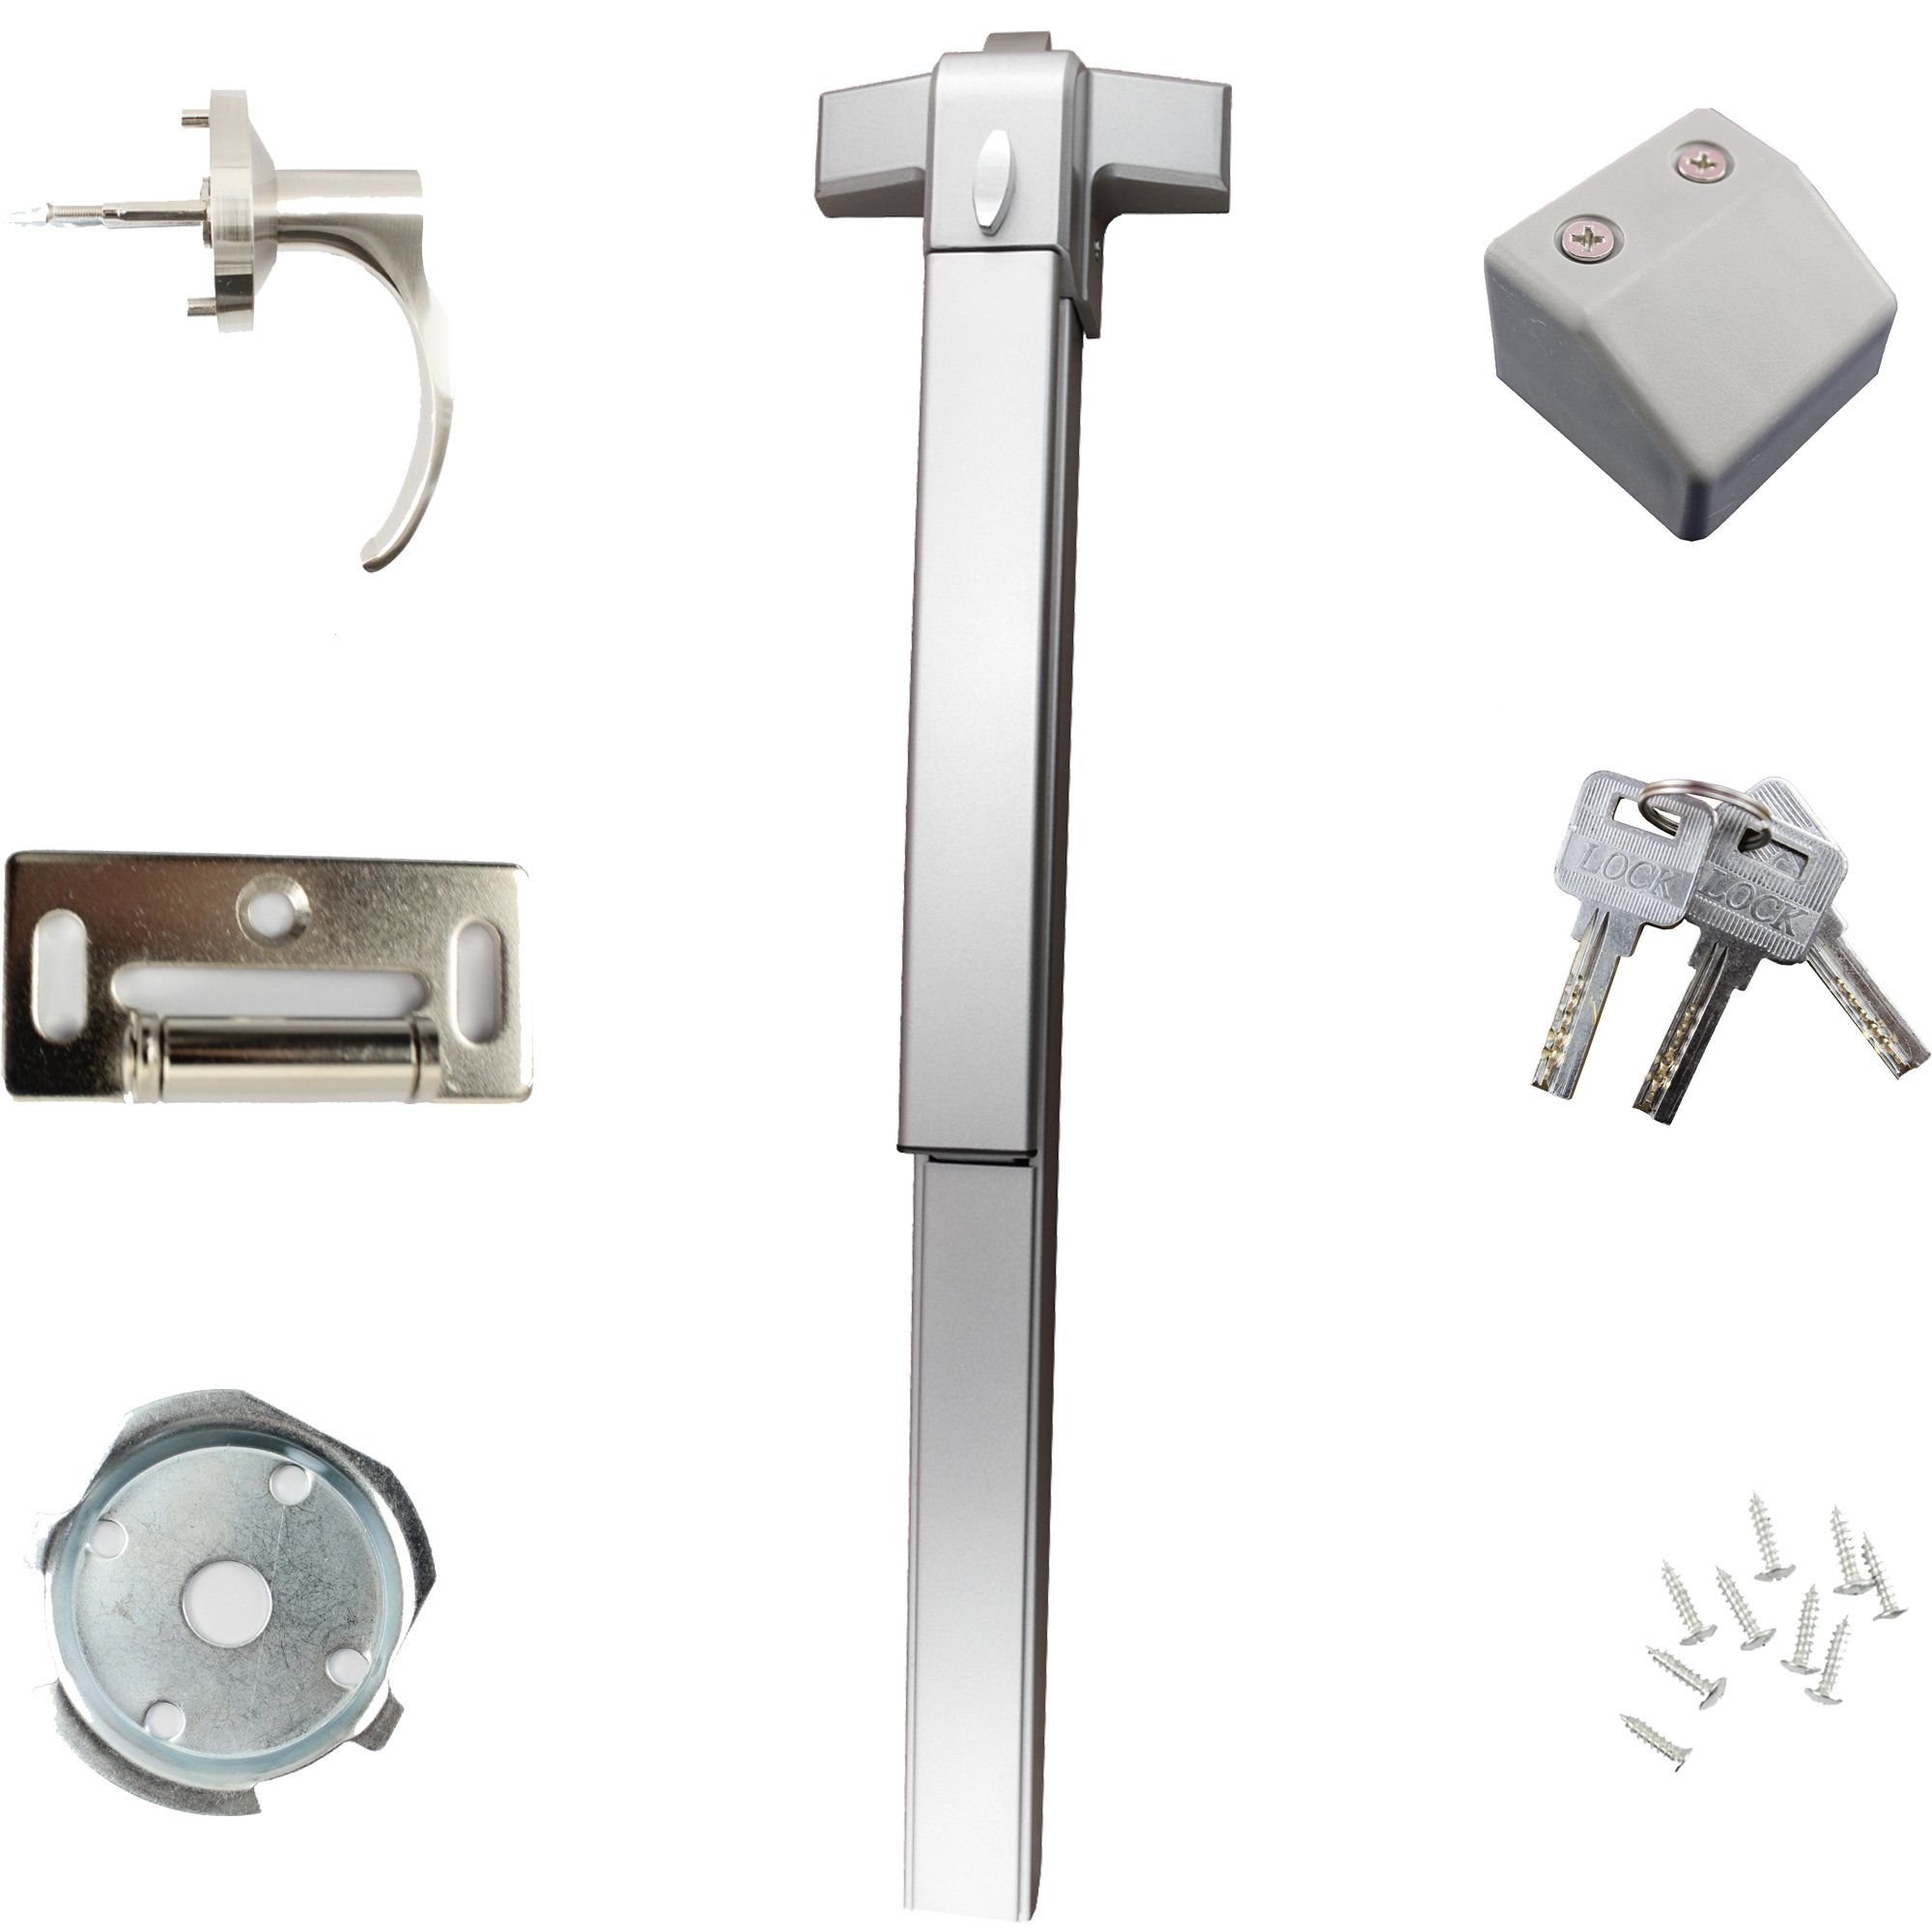 Push Bar Panic Exit Device With Exterior Lever Sprayed Aluminum Suitable for Wood Metal Door - Push Bar with Exterior Lever